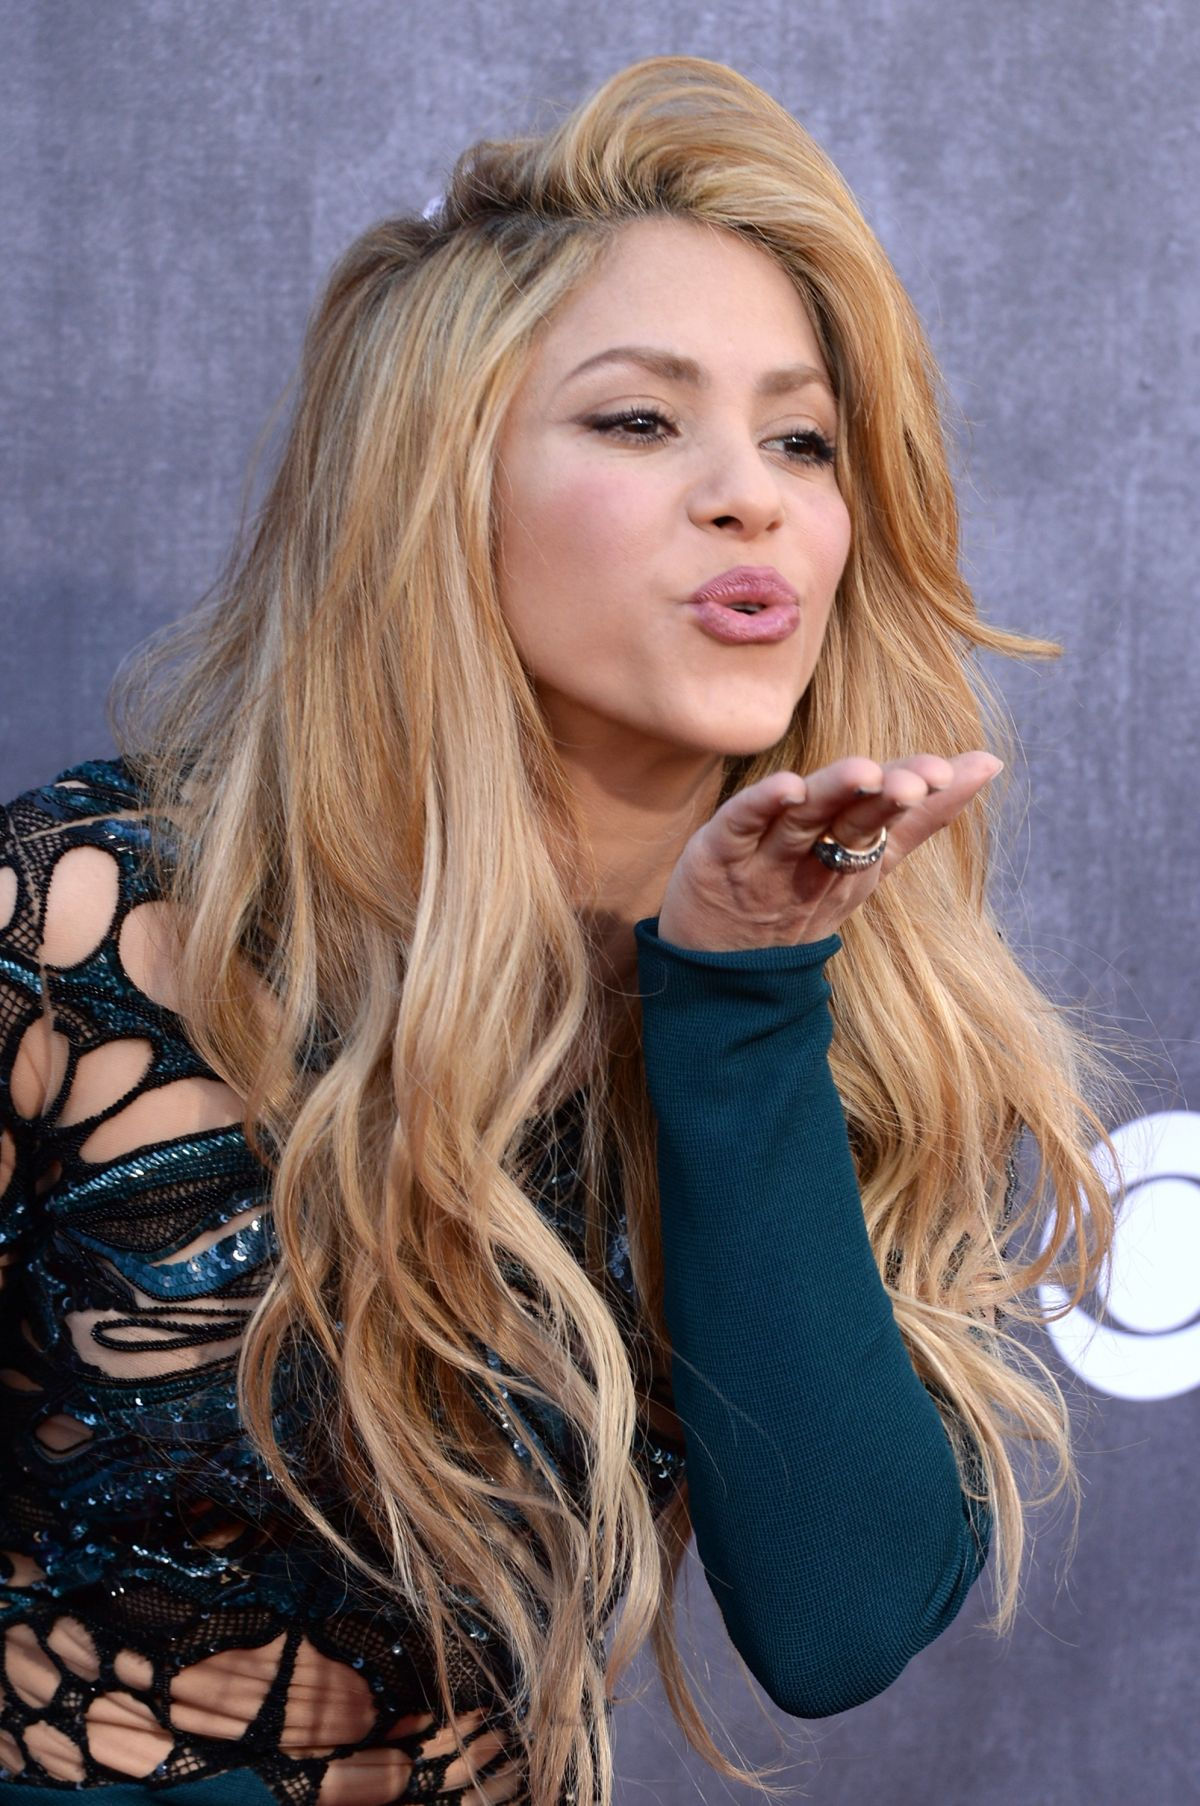 SHAKIRA at 2014 Academy of Country Music Awards - HawtCelebs Shakira